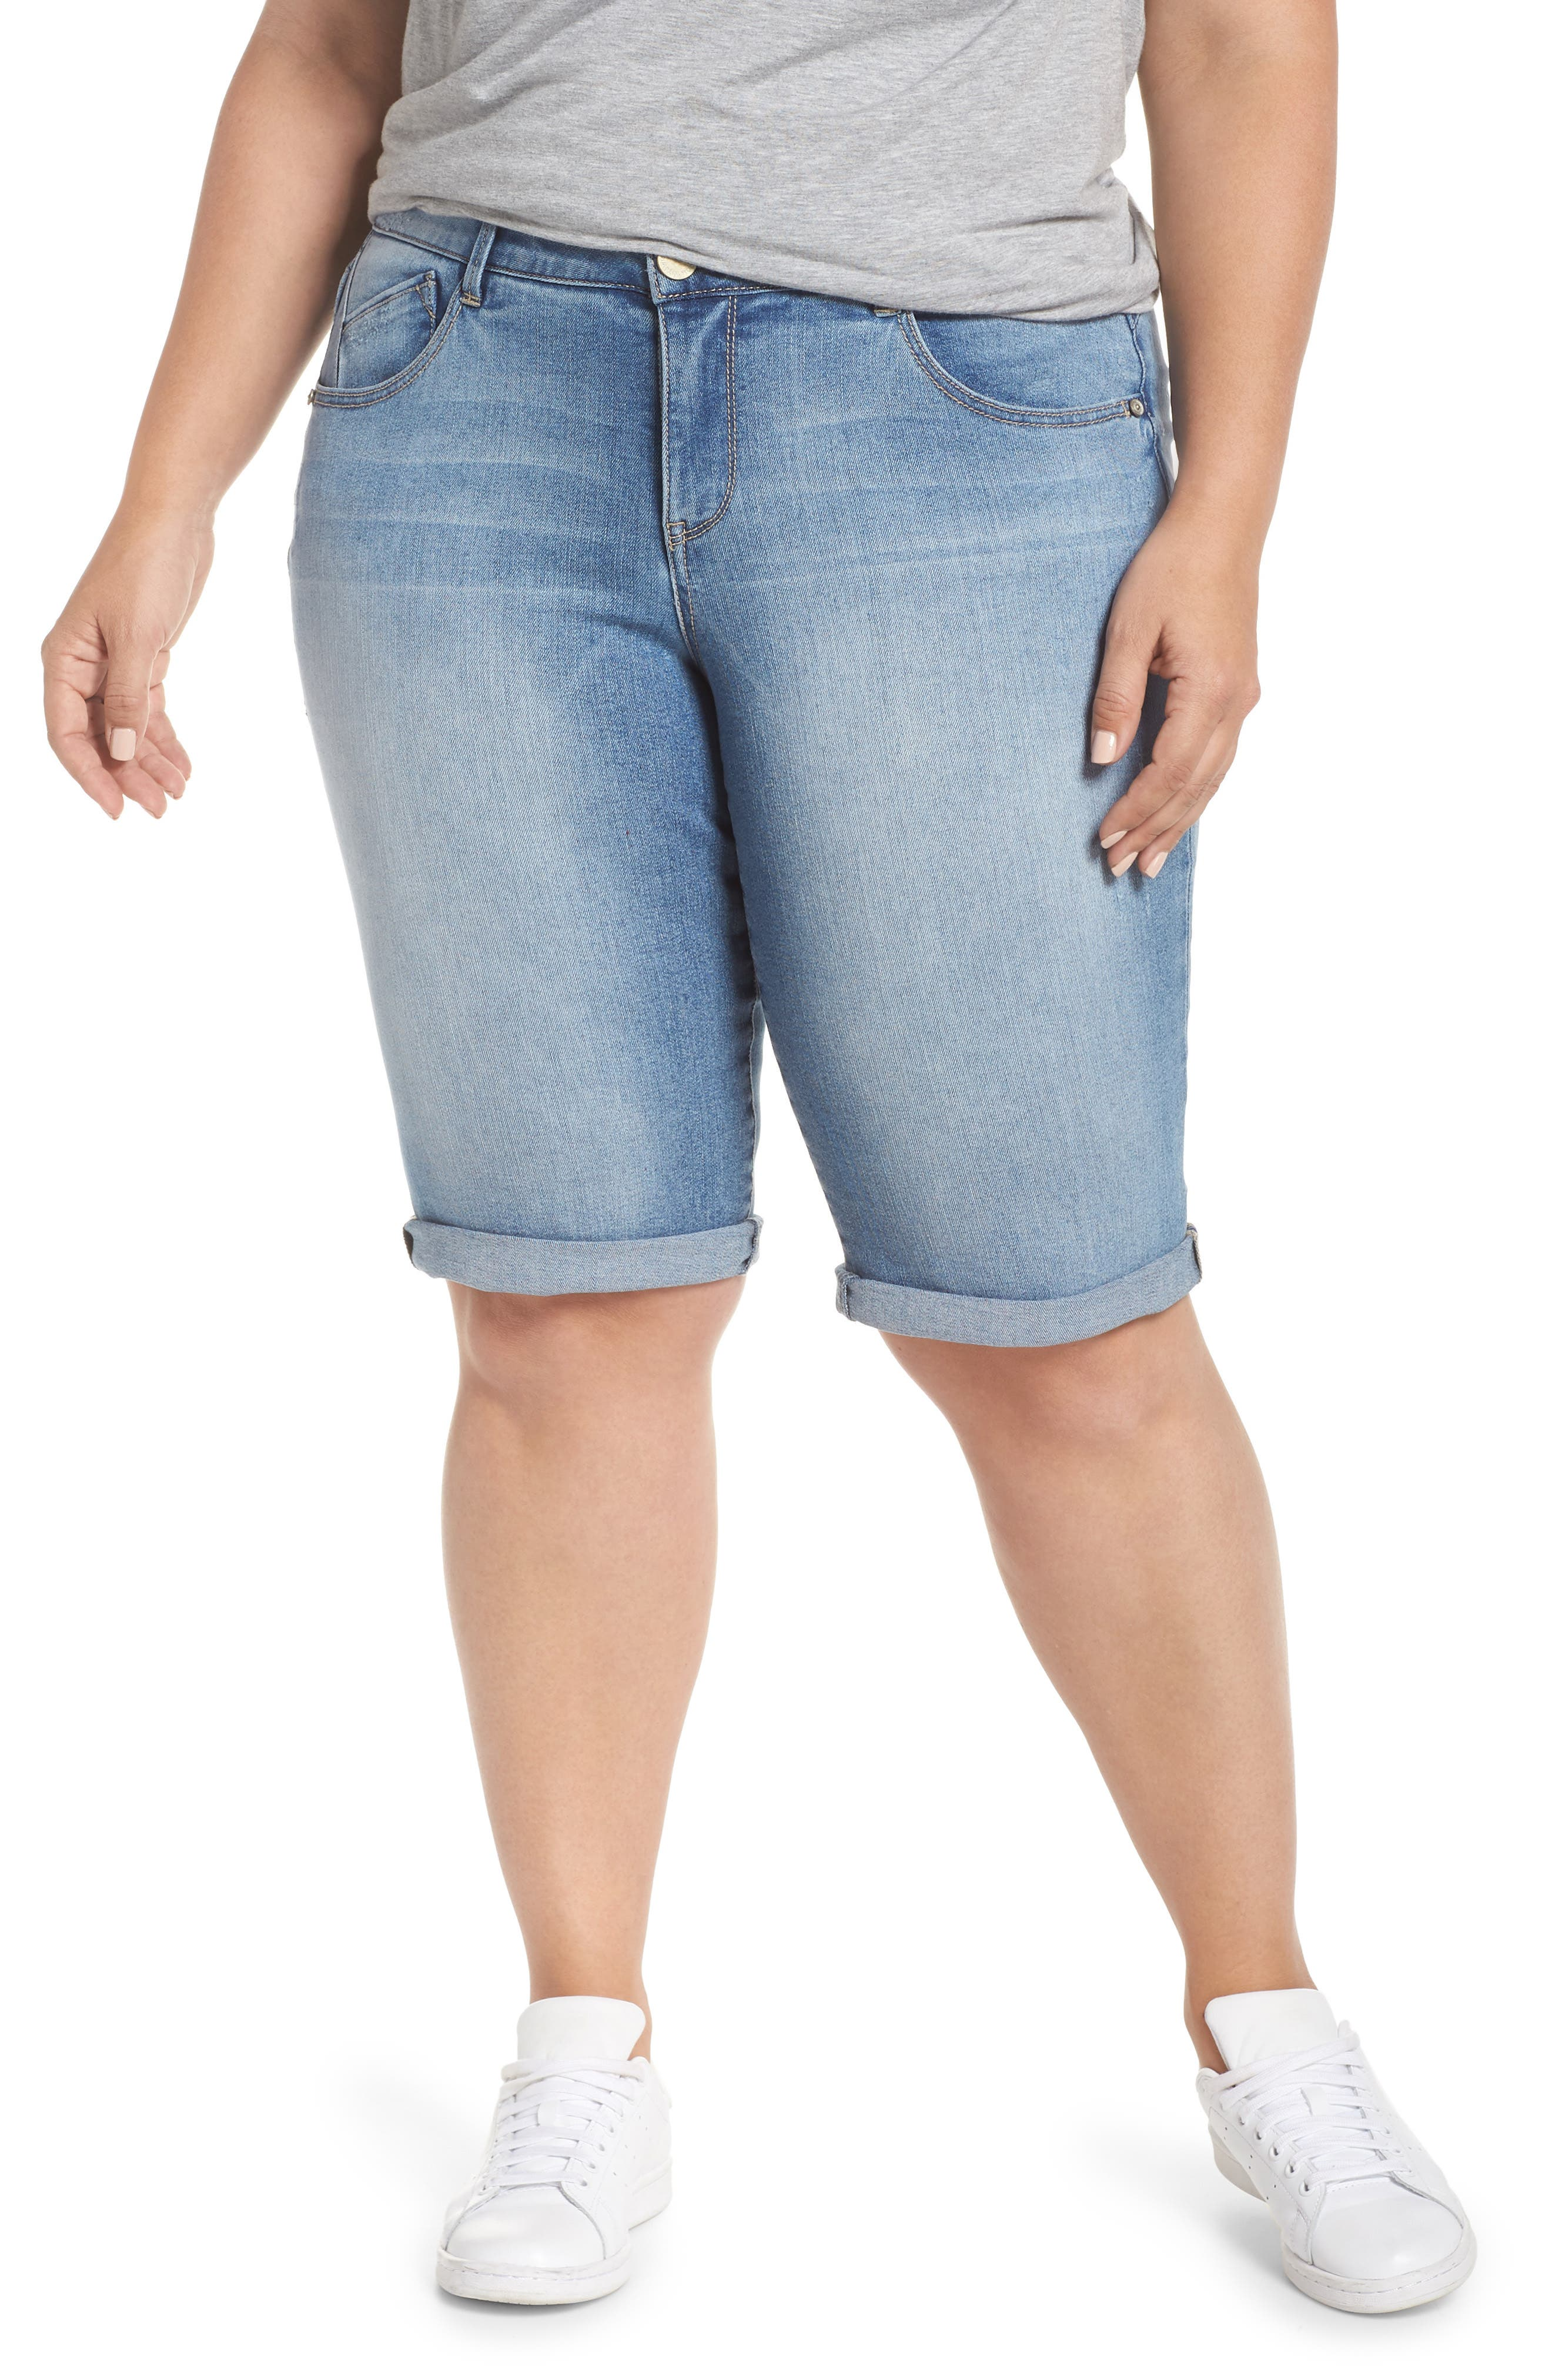 Plus Women's Wit & Wisdom Ab-Solution Cuffed Denim Shorts